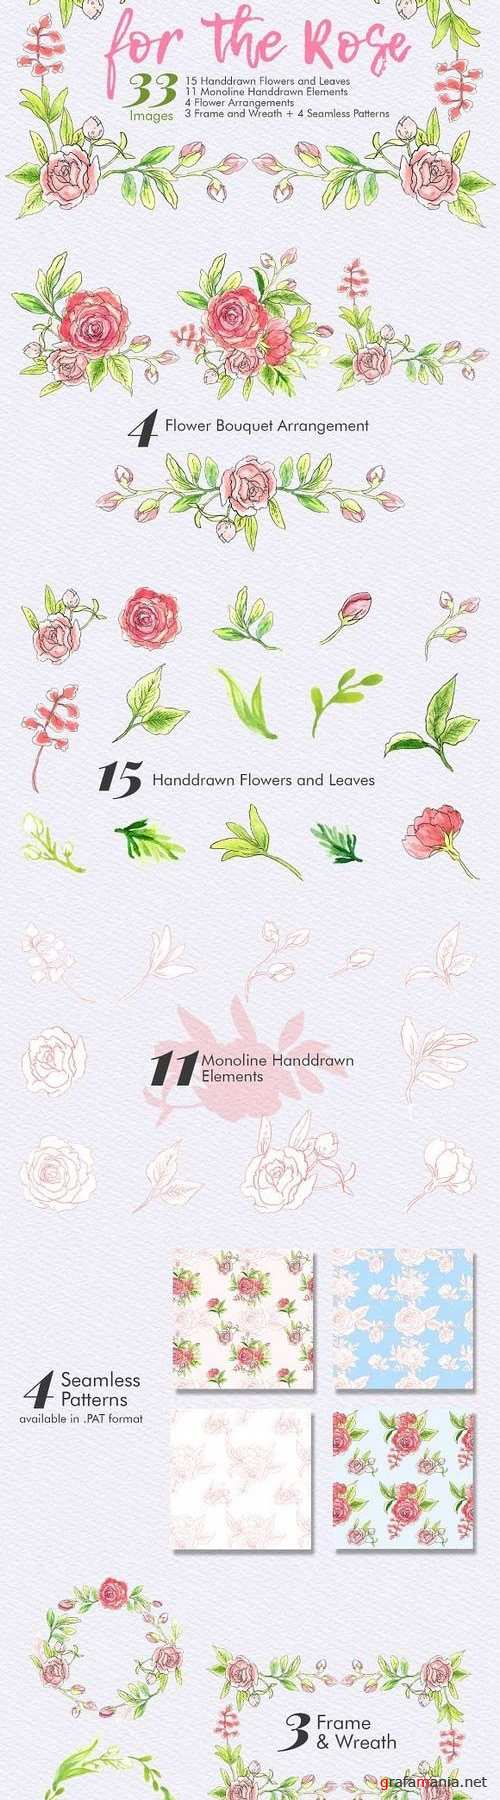 For The Rose - Handdrawn Flowers 1195459